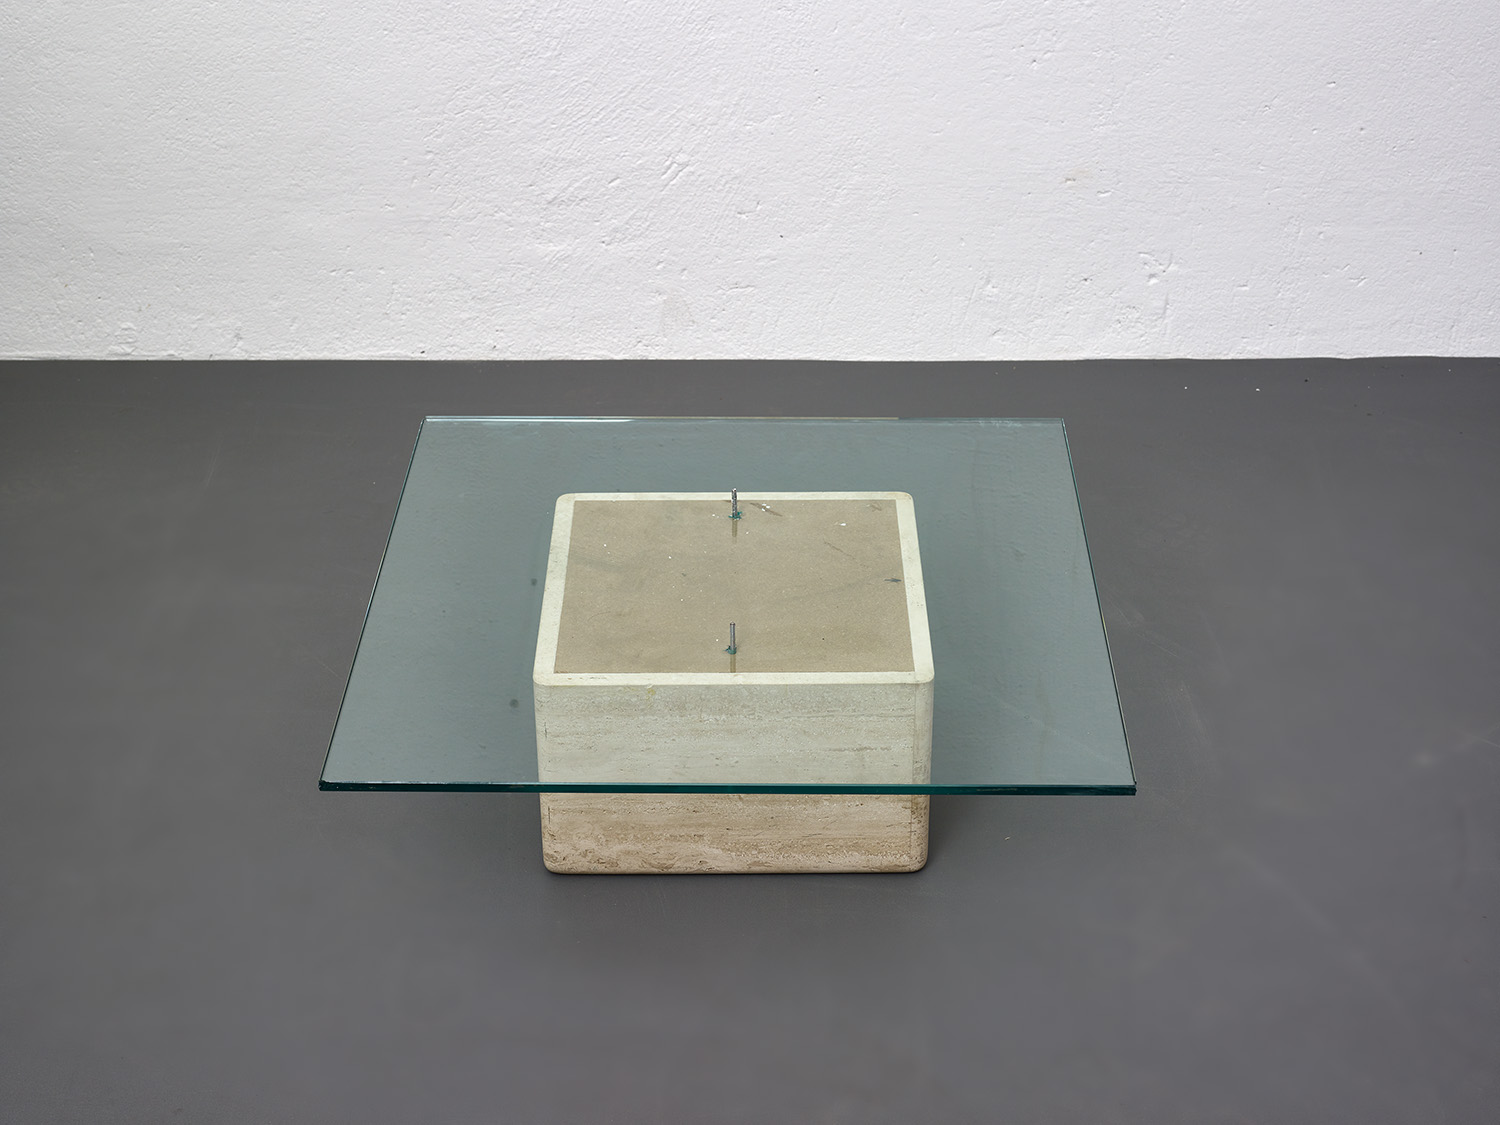 italian-travertine-coffee-table-with-floating-top-1970-1980-image-09